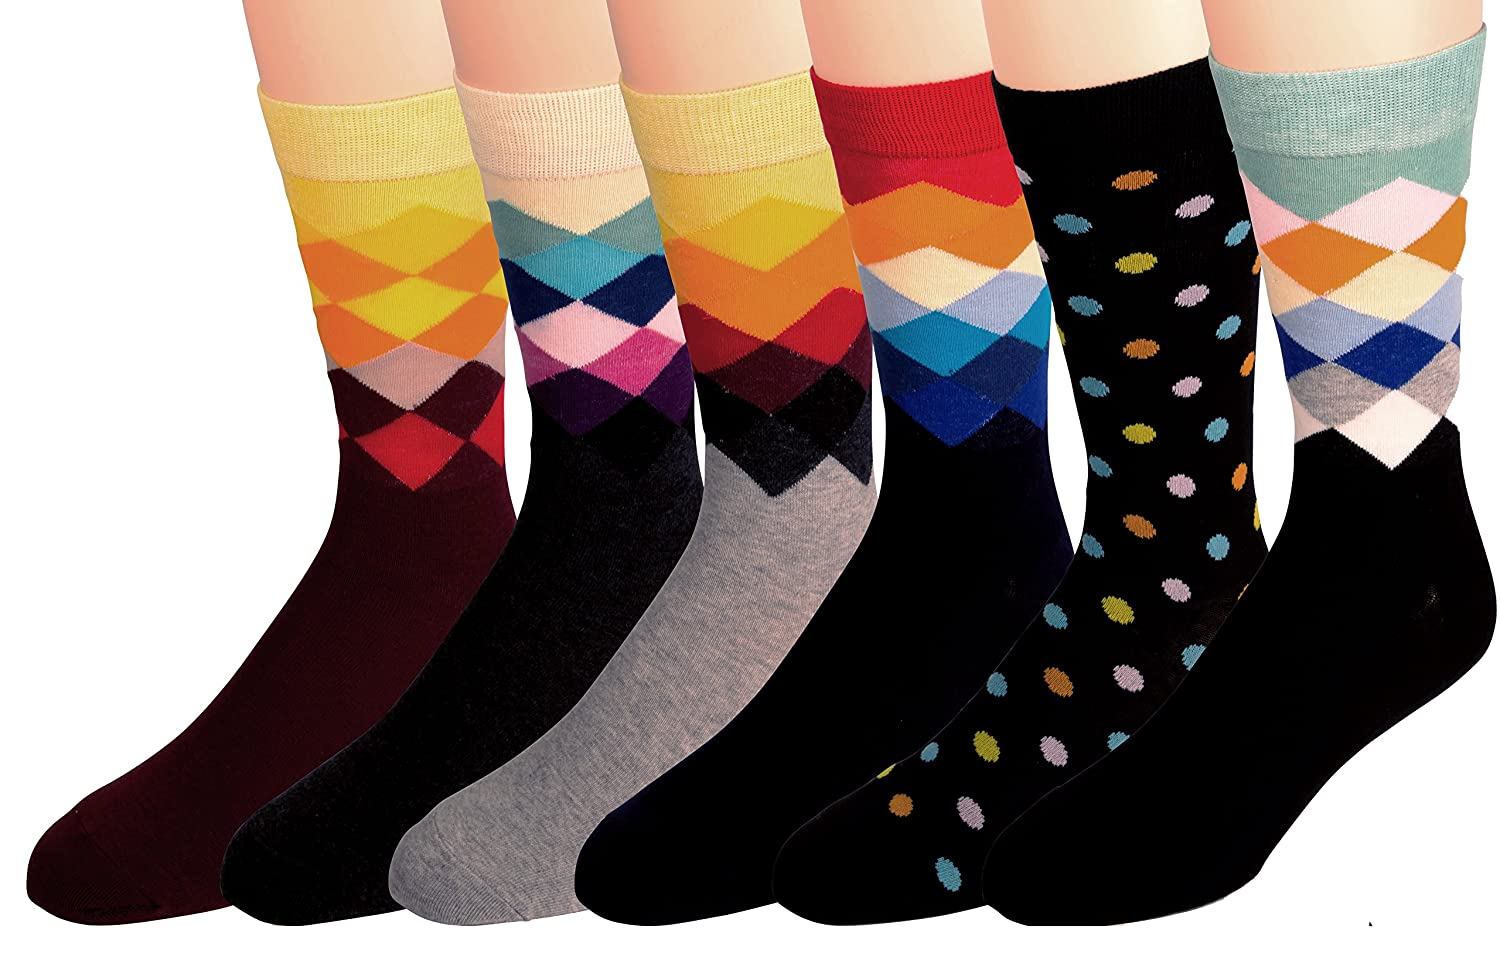 Men's Dress and Casual Socks - Fun Patterns and Colors - Breathable, Crew, Cotton Blend -by Zeke